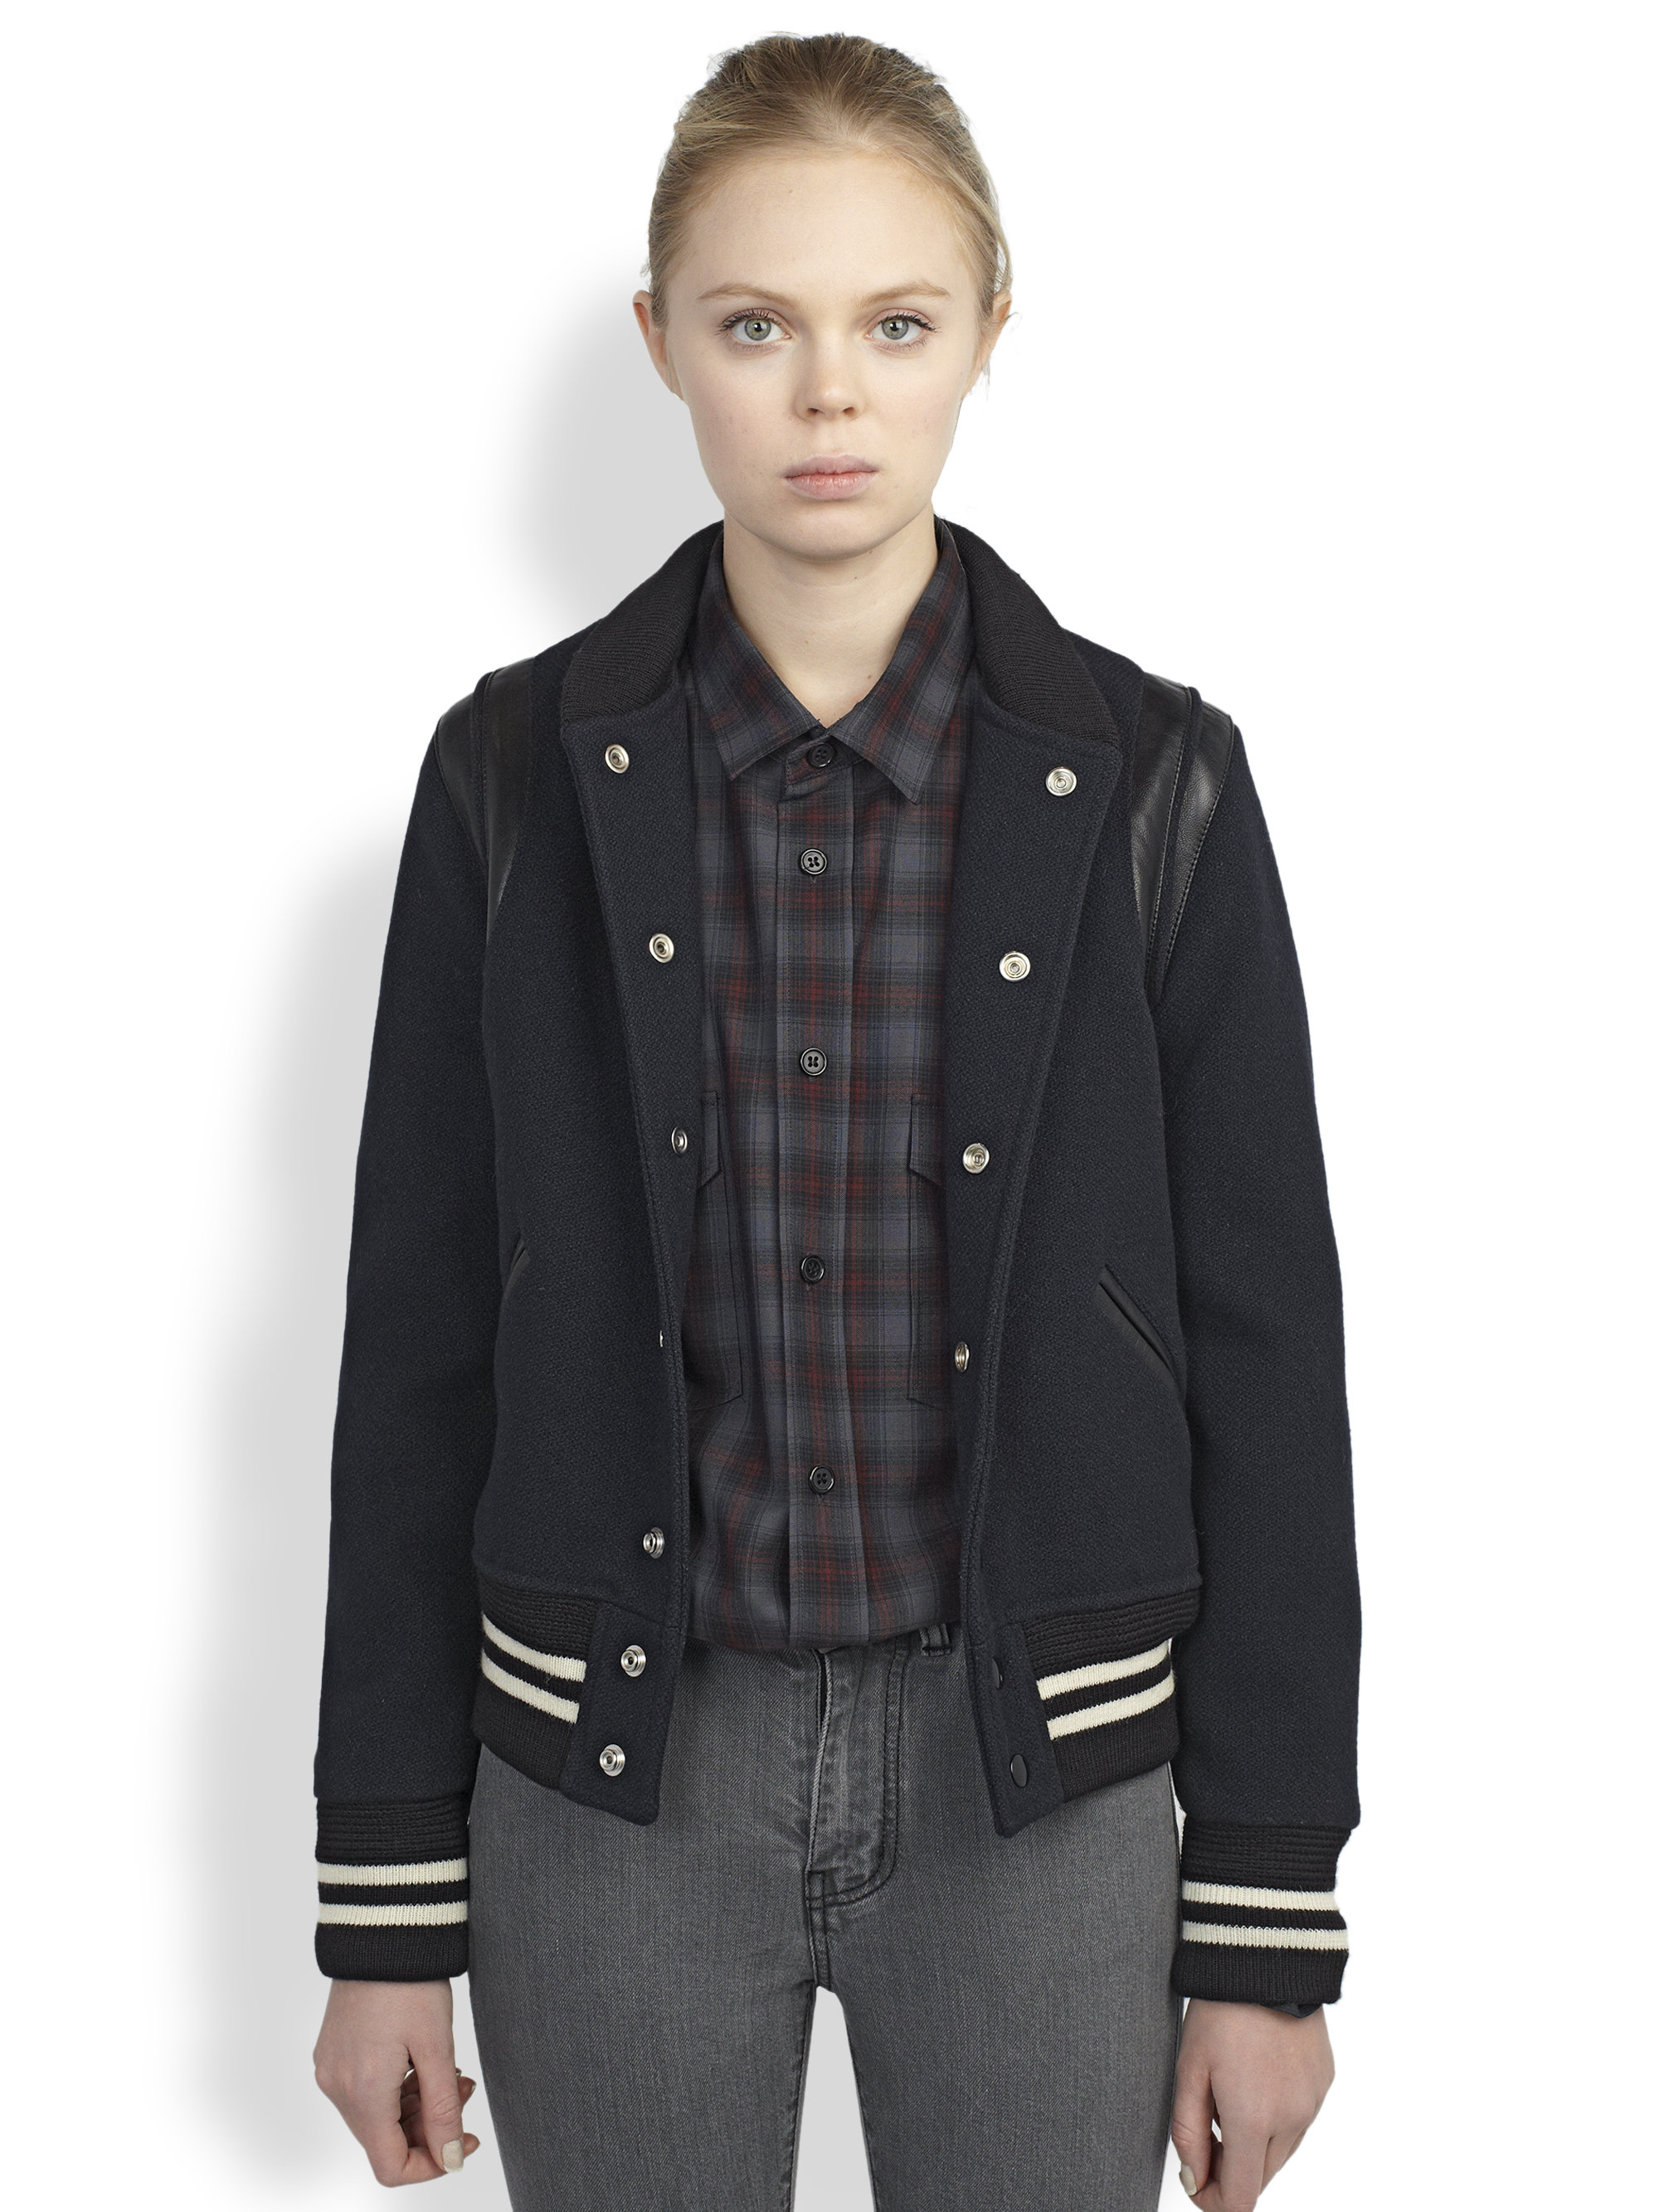 Saint laurent Teddy Leather-Trimmed Wool Varsity Jacket in Blue | Lyst